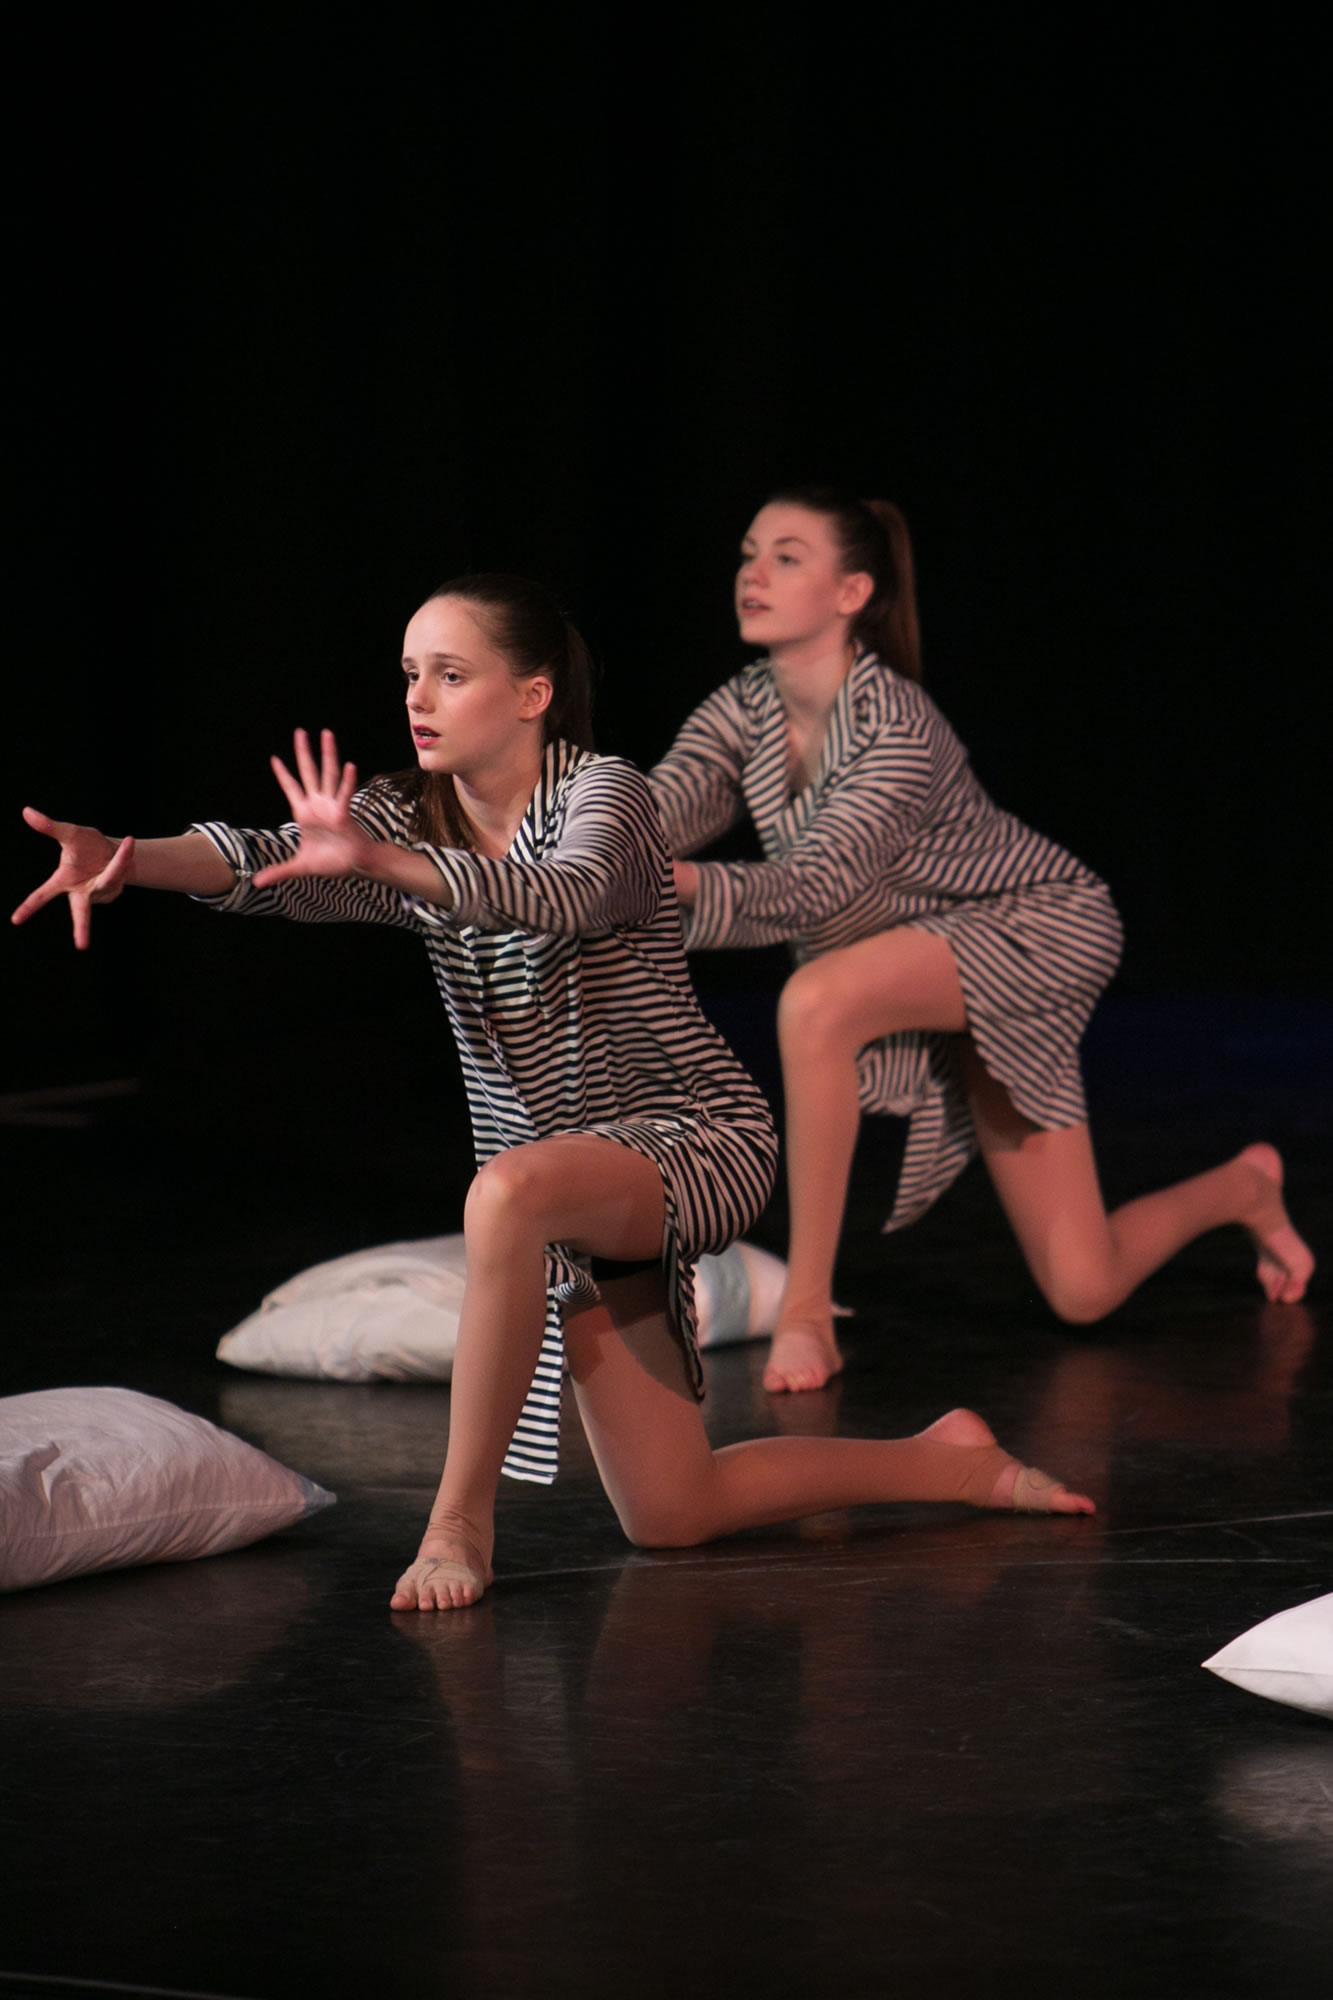 Hitchin_School_of_Dance_Show_2019-SM1_2449.jpg